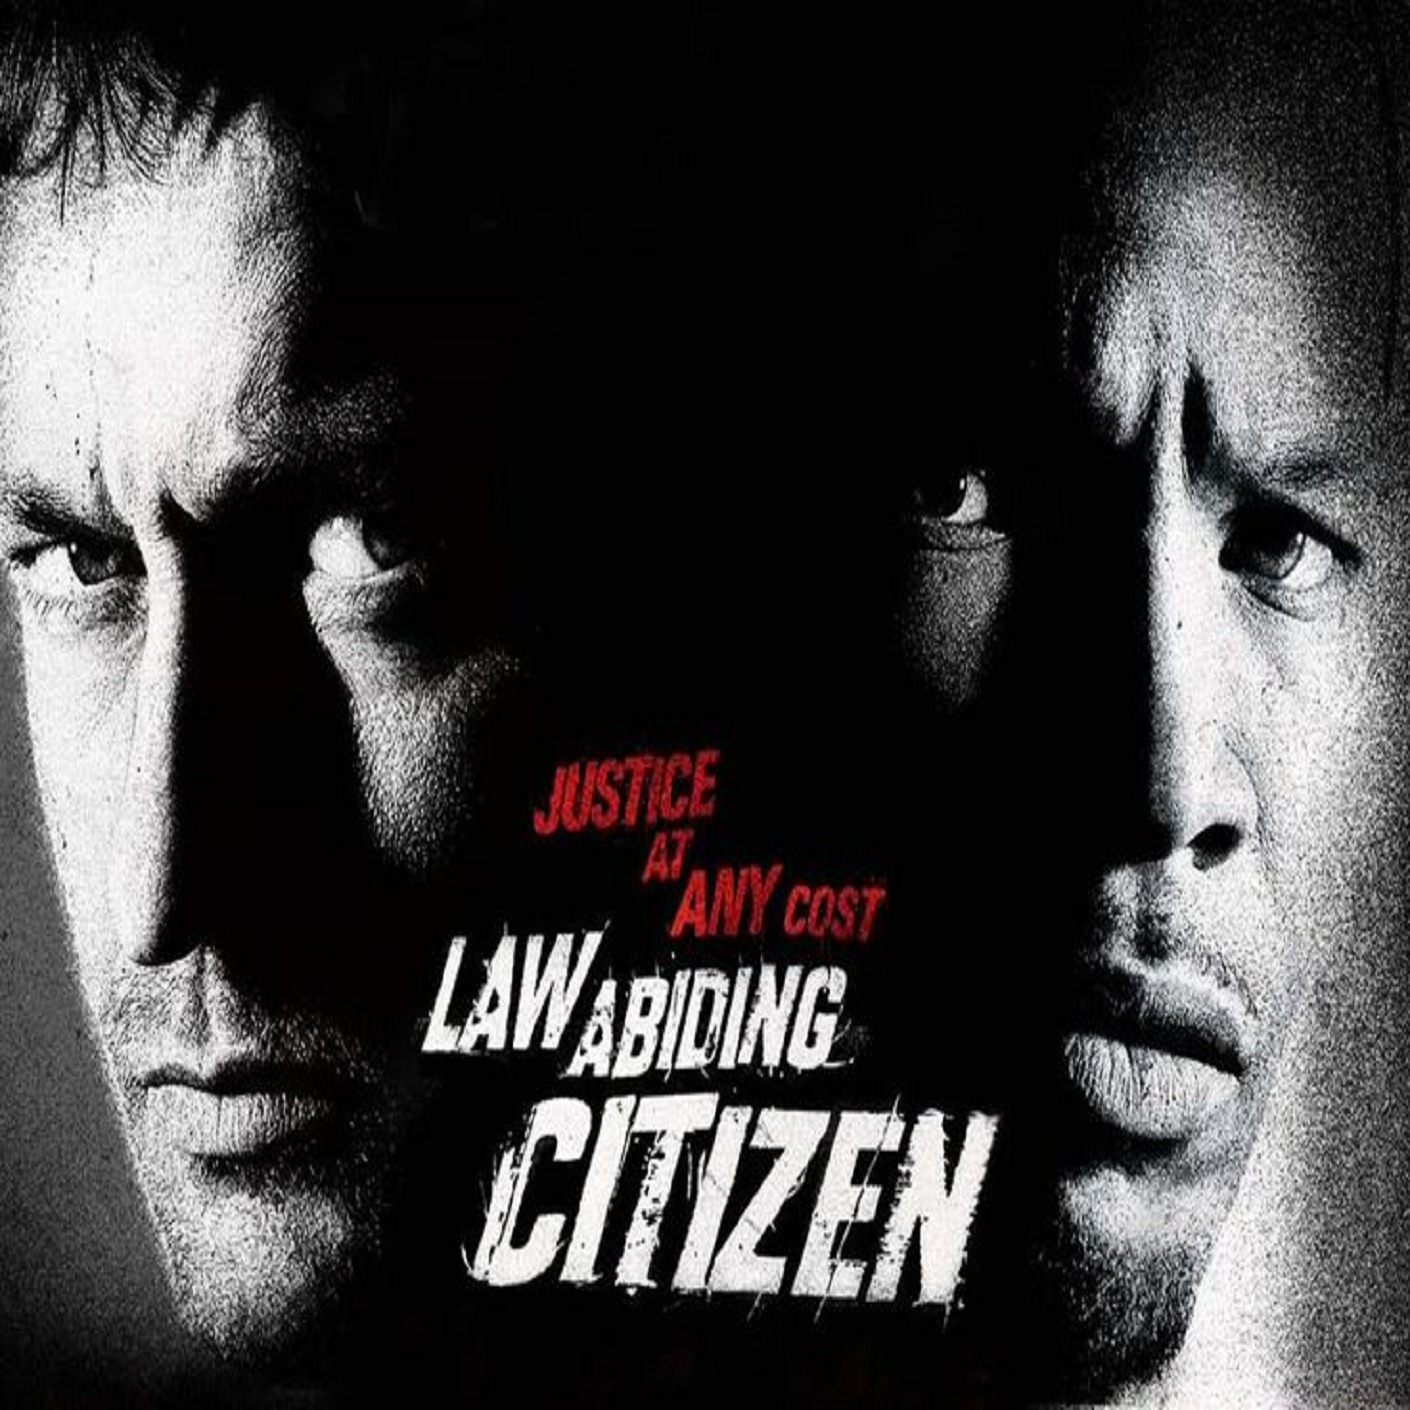 GVN Presents: They Called This A Movie - Law Abiding Citizen